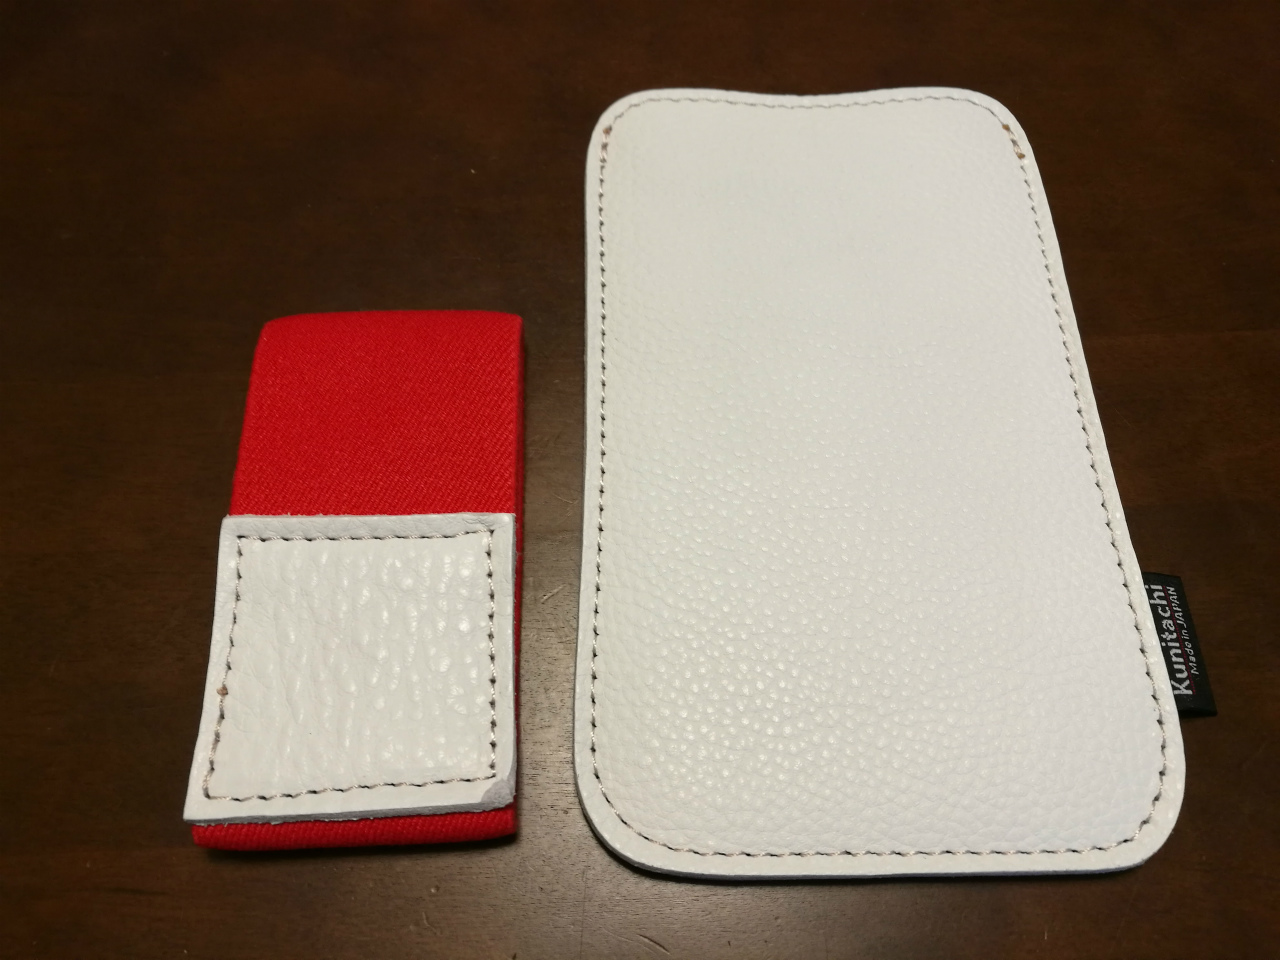 kunitachi-shrink-leather-sleeve-iphone6splus-01